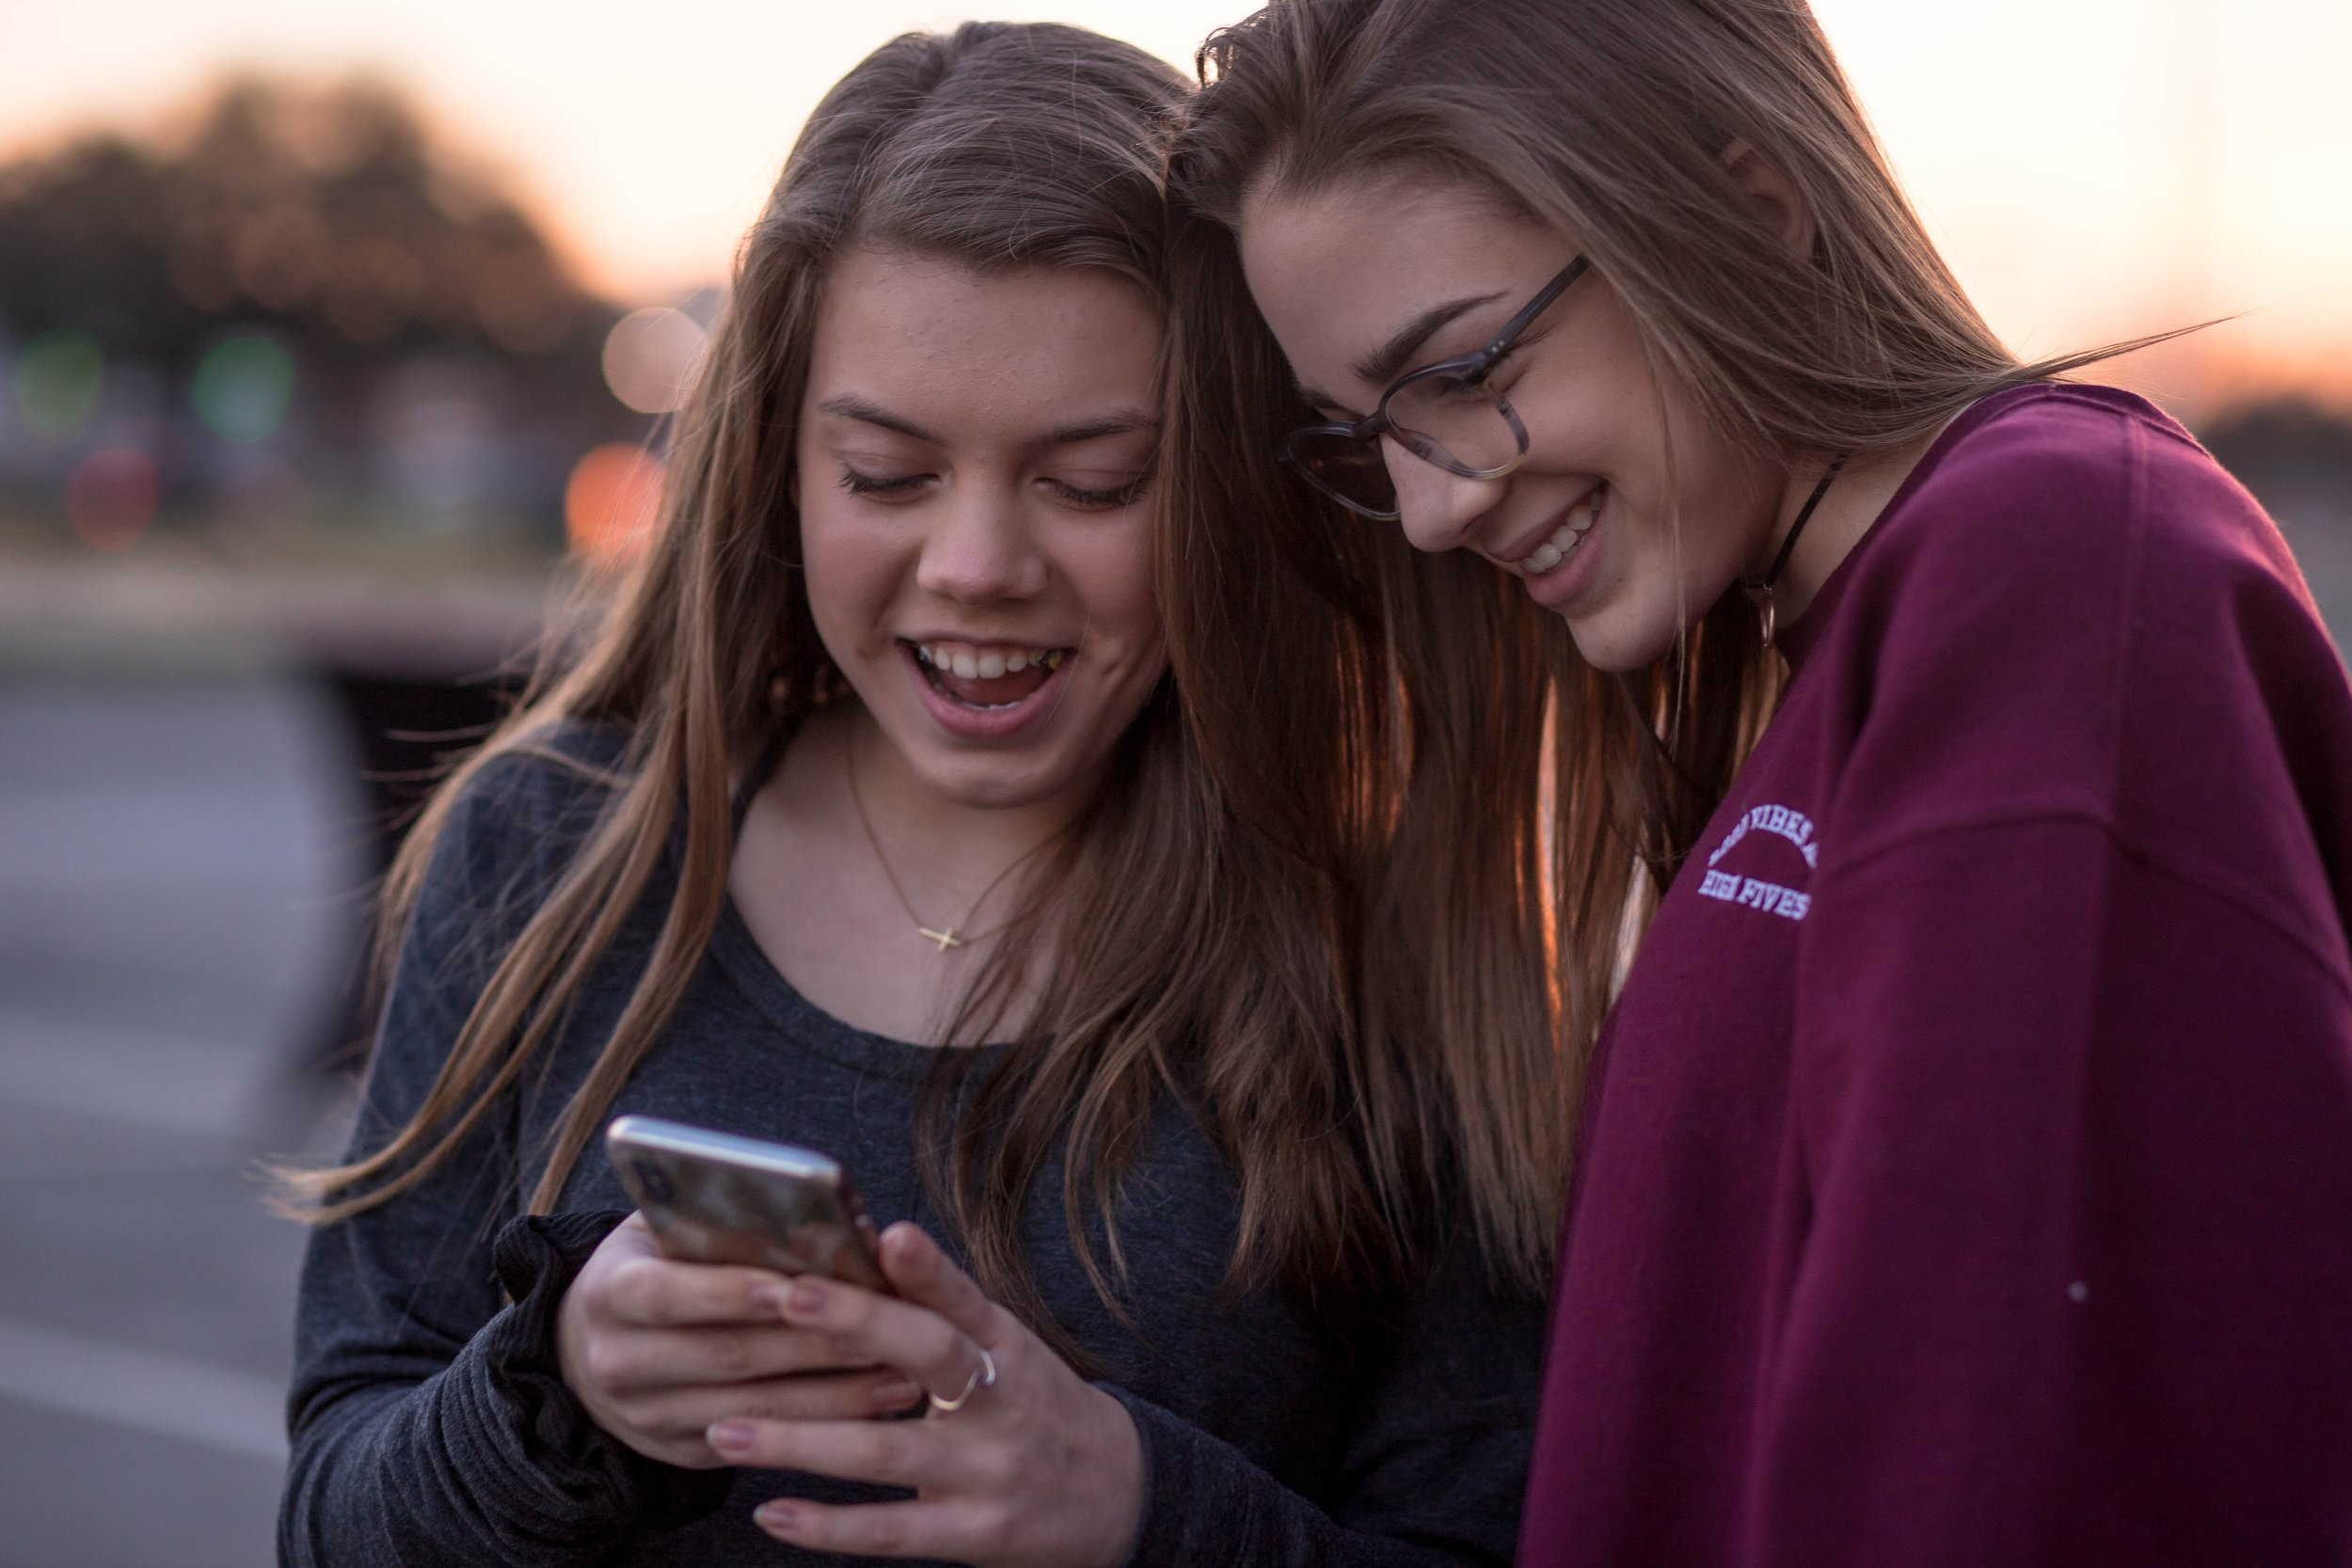 Two teenage girls looking at a mobile phone.